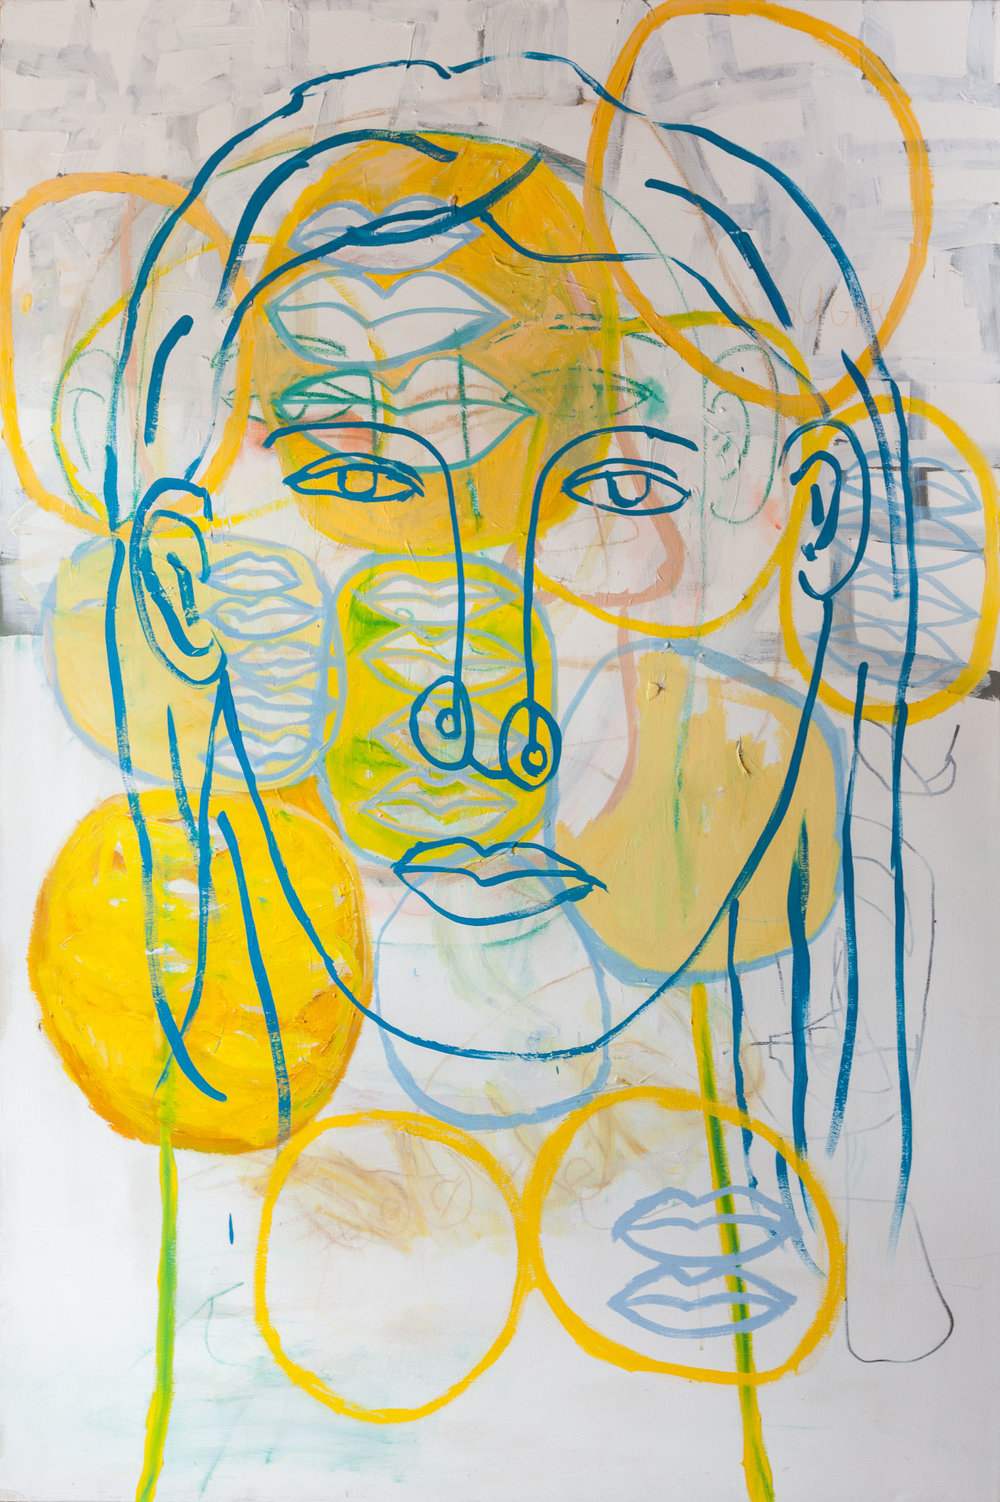 Woman's Head - Acrylic and marker on canvas72 x 48 inchesSOLD(Click on image for detail)